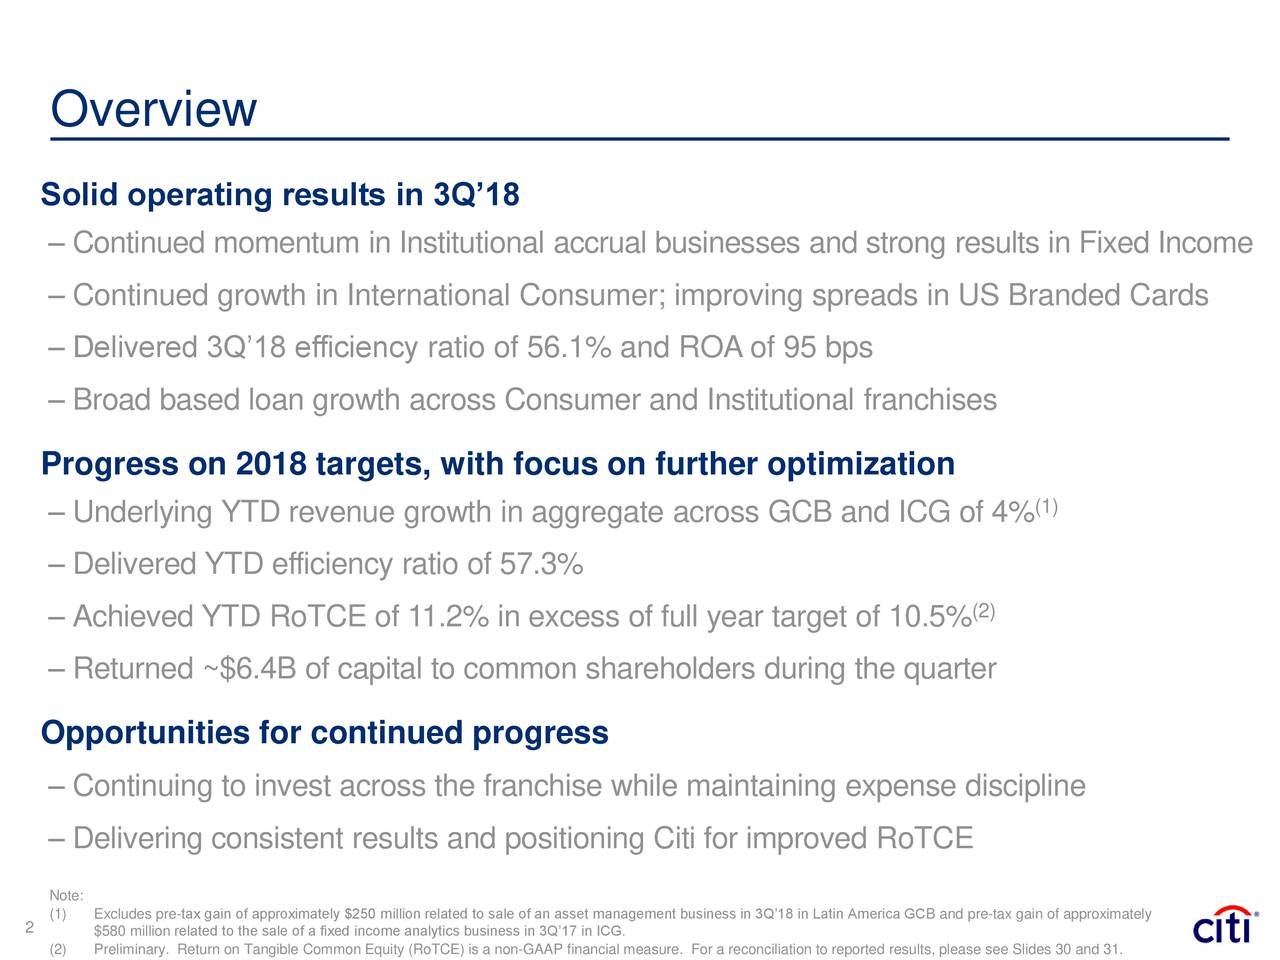 Solid operating results in 3Q'18 – Continued momentum in Institutional accrual businesses and strong results in Fixed Income – Continued growth in International Consumer; improving spreads in US Branded Cards – Delivered 3Q'18 efficiency ratio of 56.1% and ROA of 95 bps – Broad based loan growth across Consumer and Institutional franchises Progress on 2018 targets, with focus on further optimization – Underlying YTD revenue growth in aggregate across GCB and ICG of 4% (1) – Delivered YTD efficiency ratio of 57.3% – Achieved YTD RoTCE of 11.2% in excess of full year target of 10.5% (2) – Returned ~$6.4B of capital to common shareholders during the quarter Opportunities for continued progress – Continuing to invest across the franchise while maintaining expense discipline – Delivering consistent results and positioning Citi for improved RoTCE (1)eExcludes pre-tax gain of approximately $250 million related to sale of an asset management business in 3Q'18 in Latin America GCB and pre-tax gain of approximately 2 $580 million related to the sale of a fixed income analytics business in 3Q'17 in ICG.